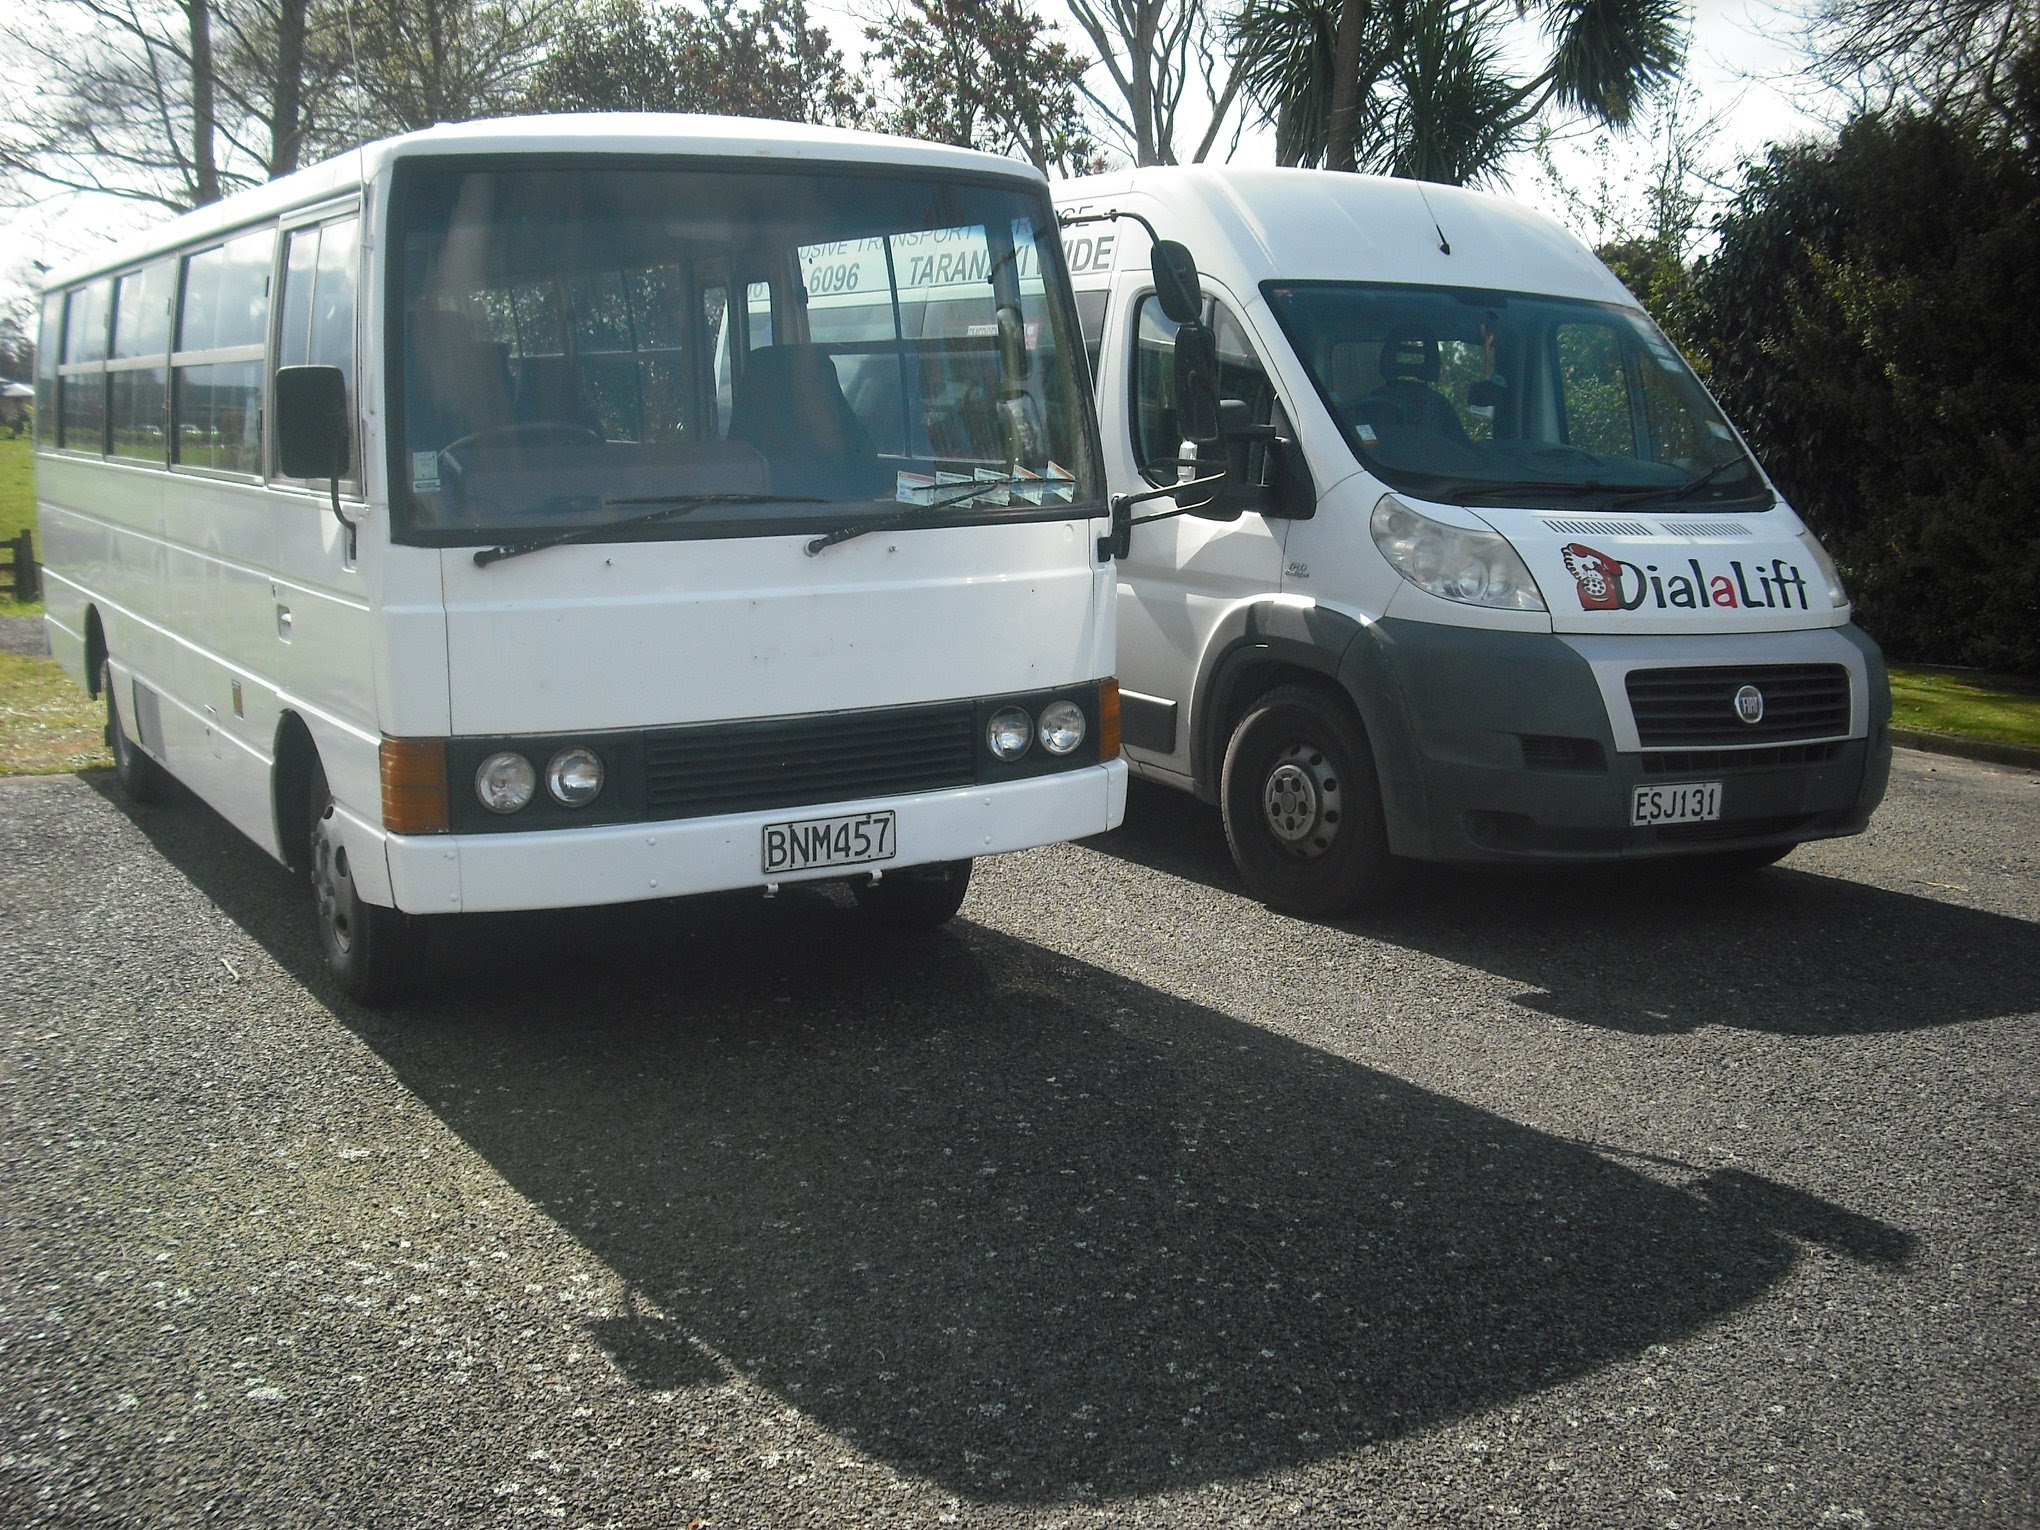 Dial A Lift van and bus